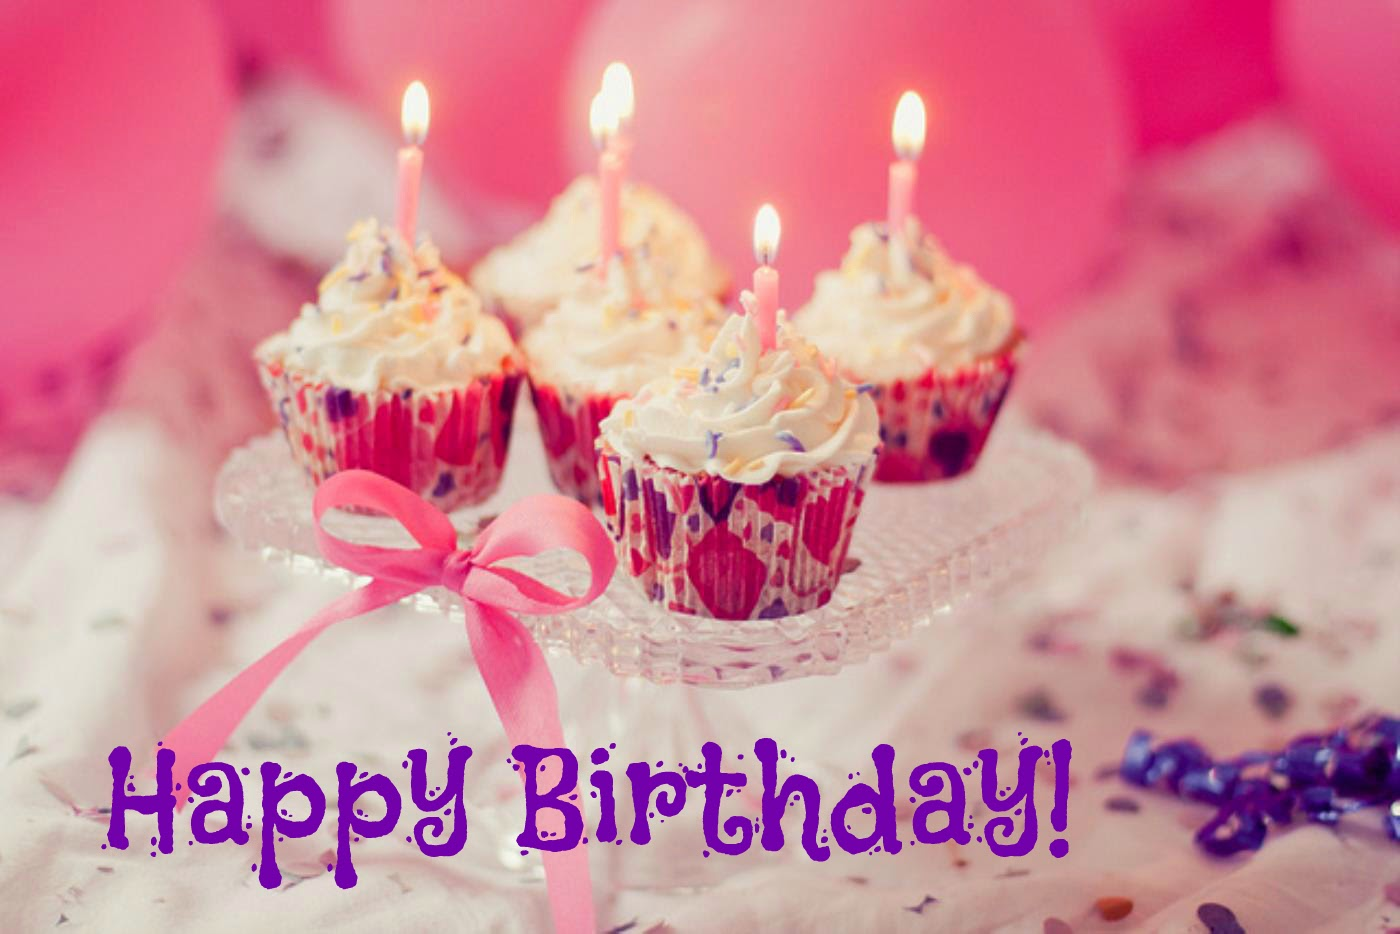 Beautiful-Love-Birthday-Cards-For-Her.jpg